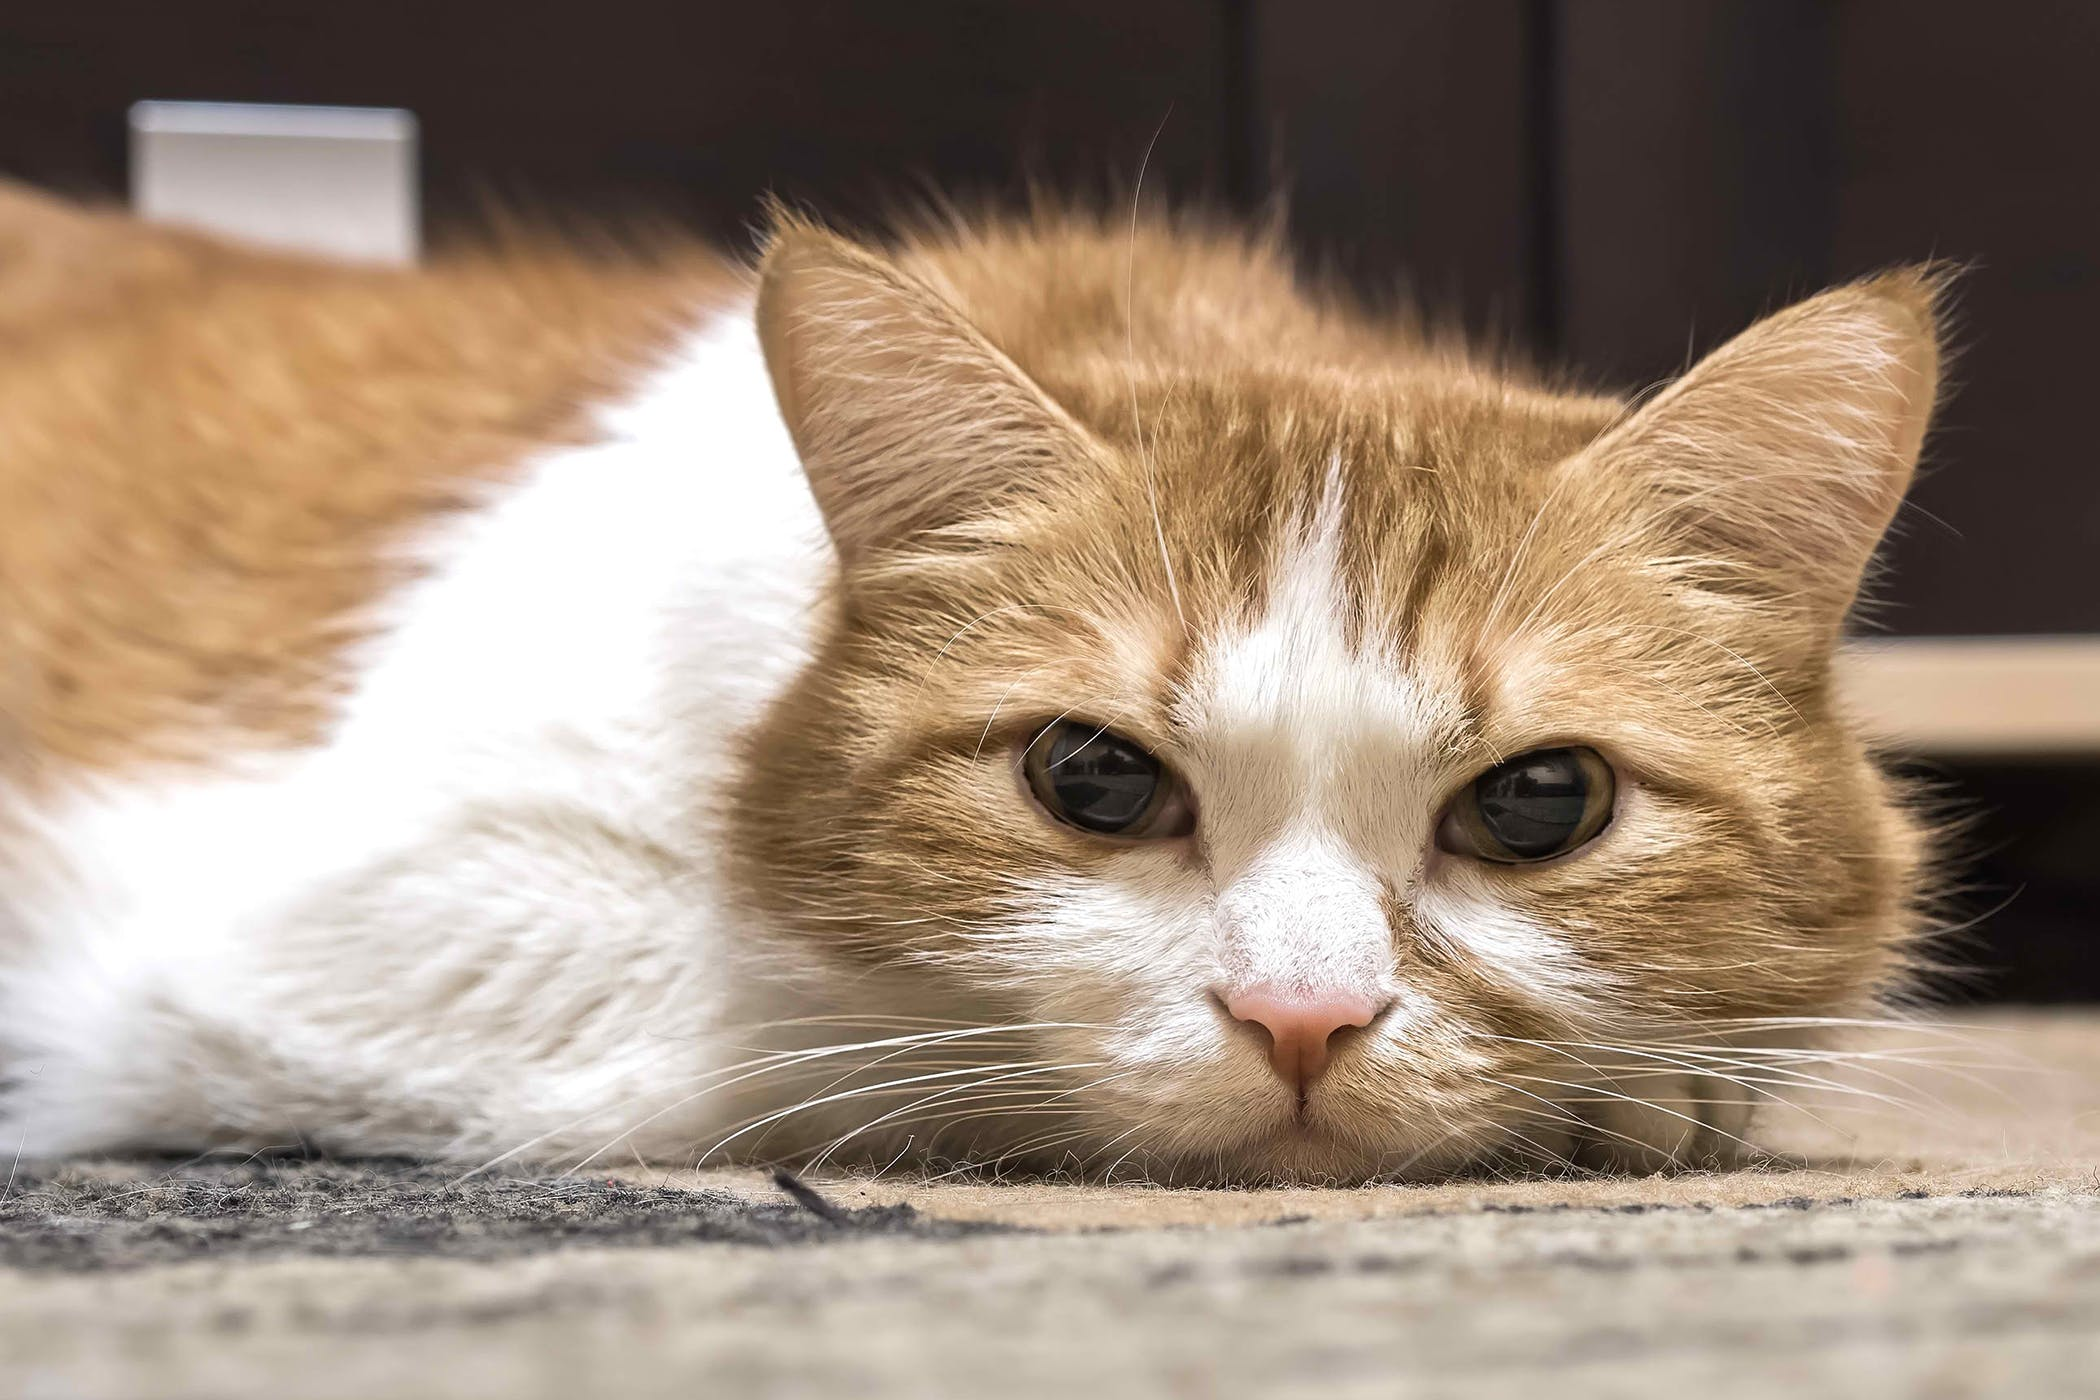 Calcivirosis in cats: symptoms and treatment 3